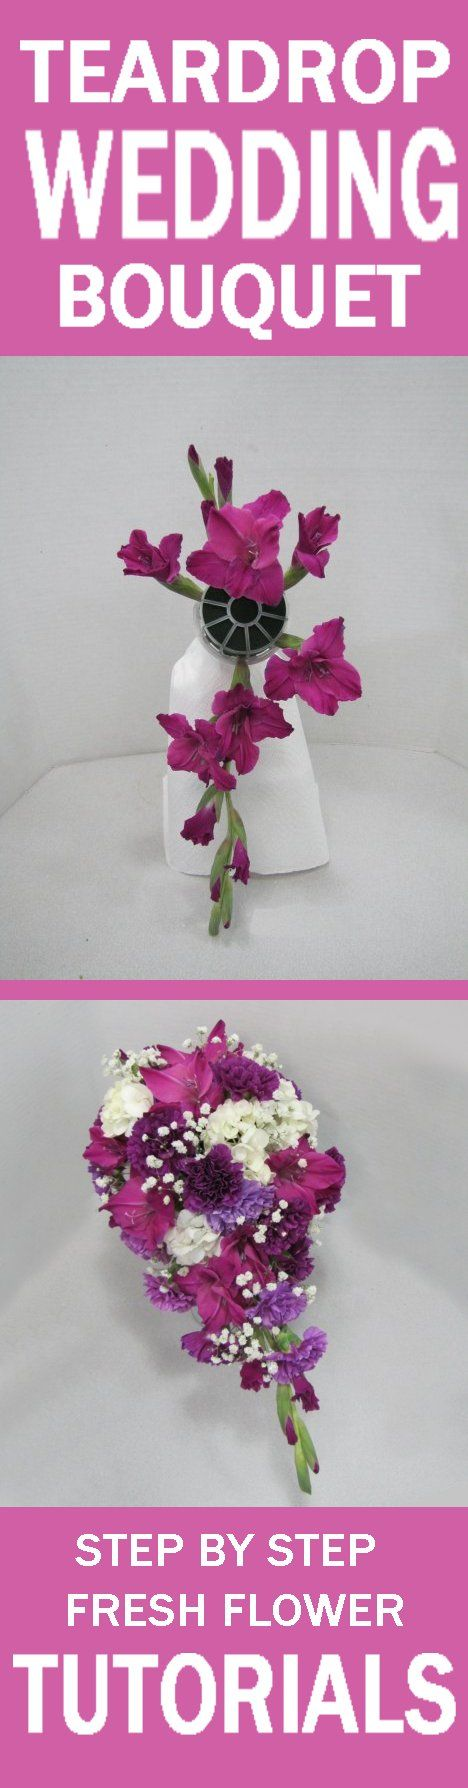 129 best how to make a wedding bouquet images on pinterest bridal purple wedding flower bouquets easy free fresh flower tutorials learn how to make bridal bouquets izmirmasajfo Choice Image